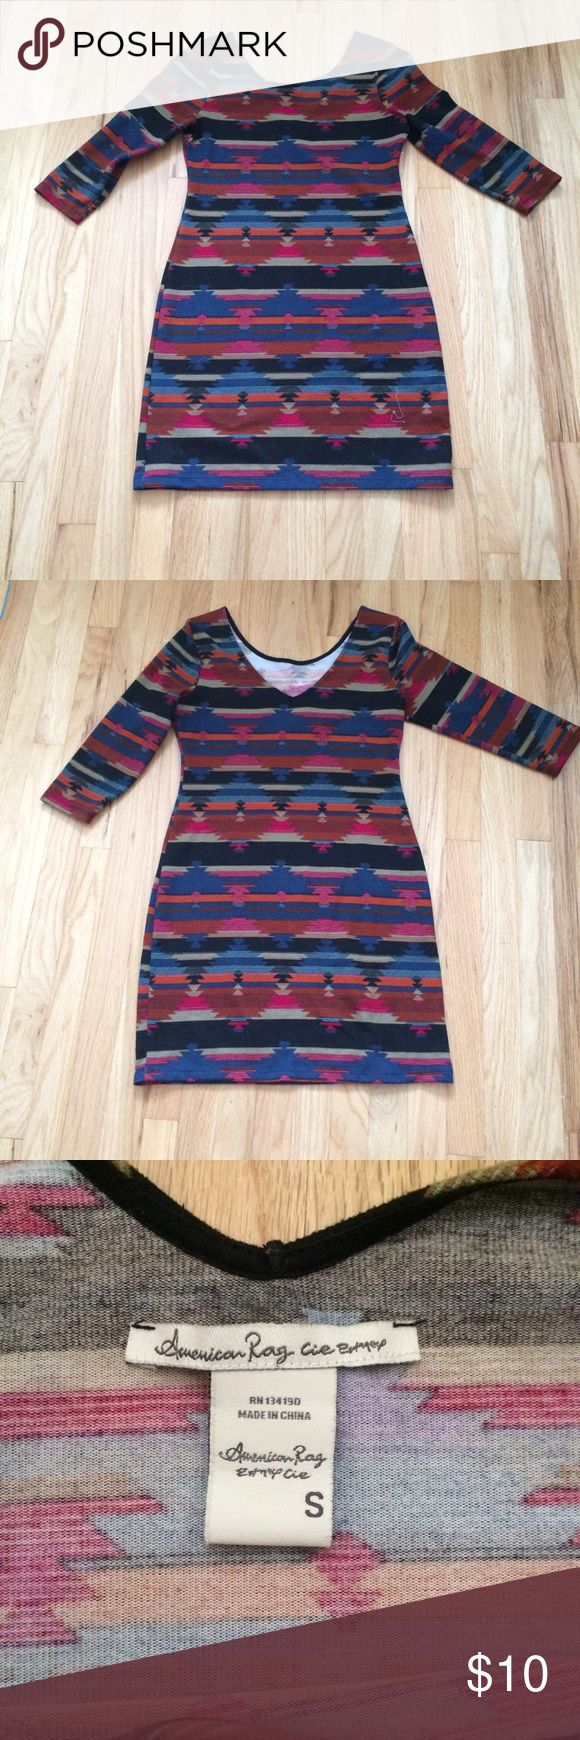 AZTEC BODYCON DRESS This dress is truly unique! Looks amazing on! Material is thicker for fall and winter wear. No rips or stains. Looks great with riding boots and a cardigan. Sadly does not fit me anymore. Has a v back and is stretchy. American Rag Dresses Mini